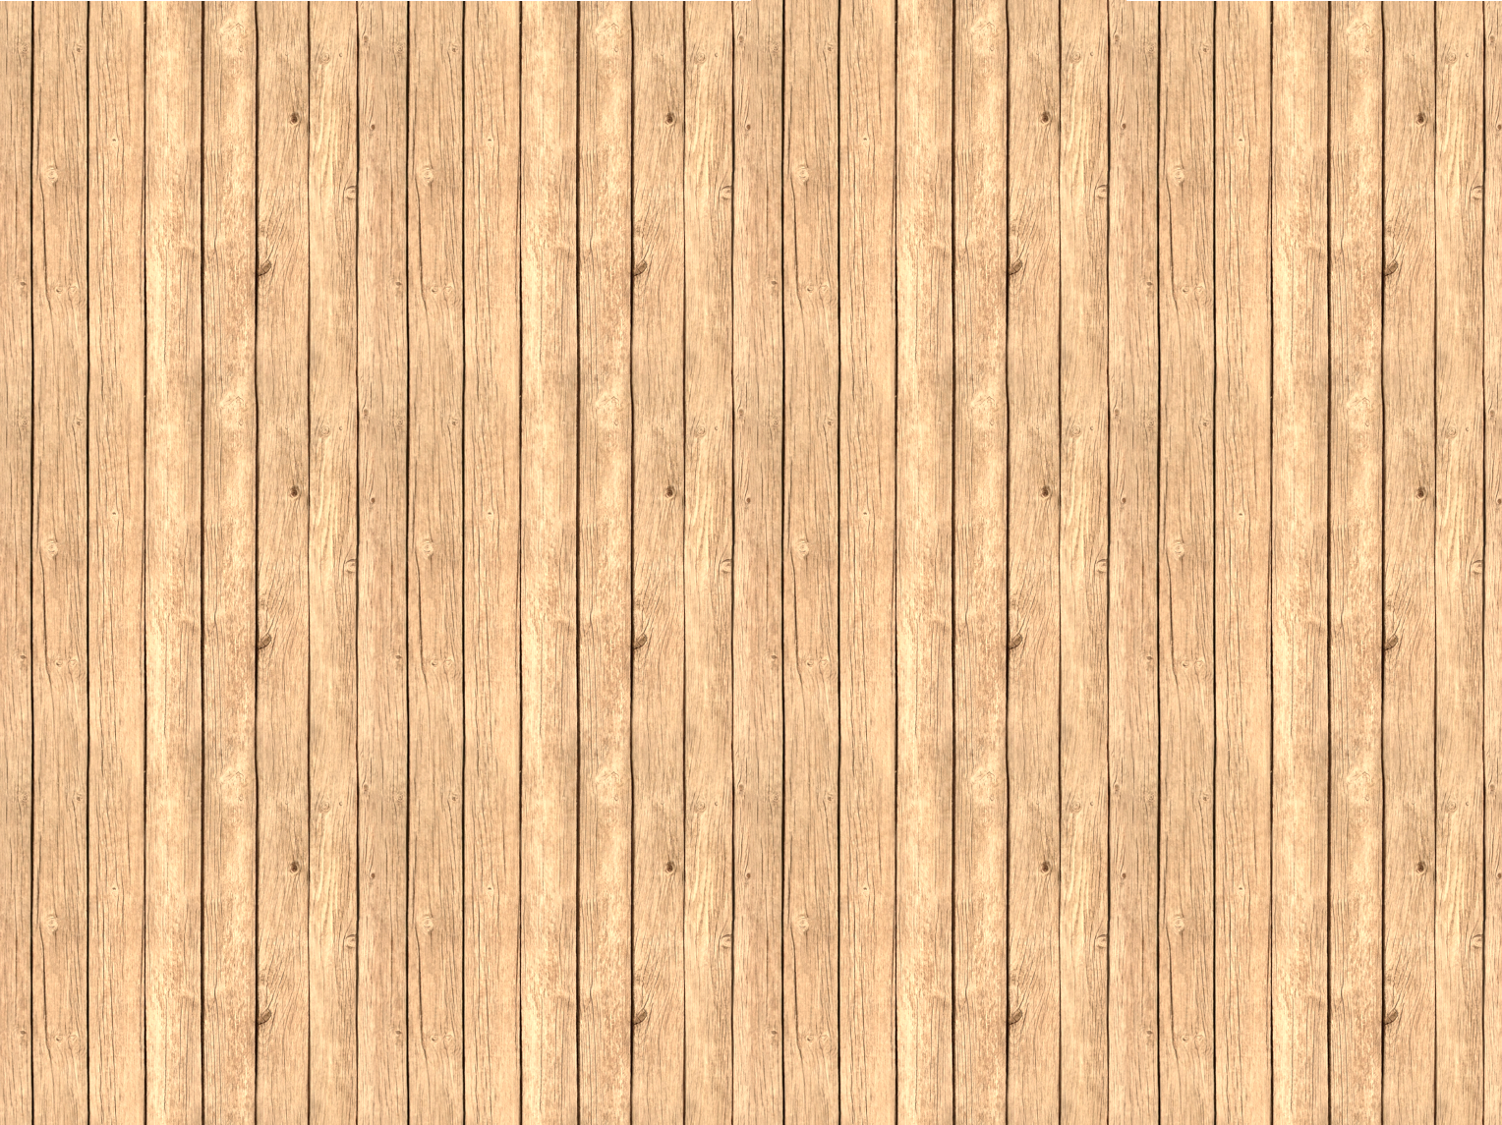 Free printable textures texturefree dollhouse for Wood flooring choices